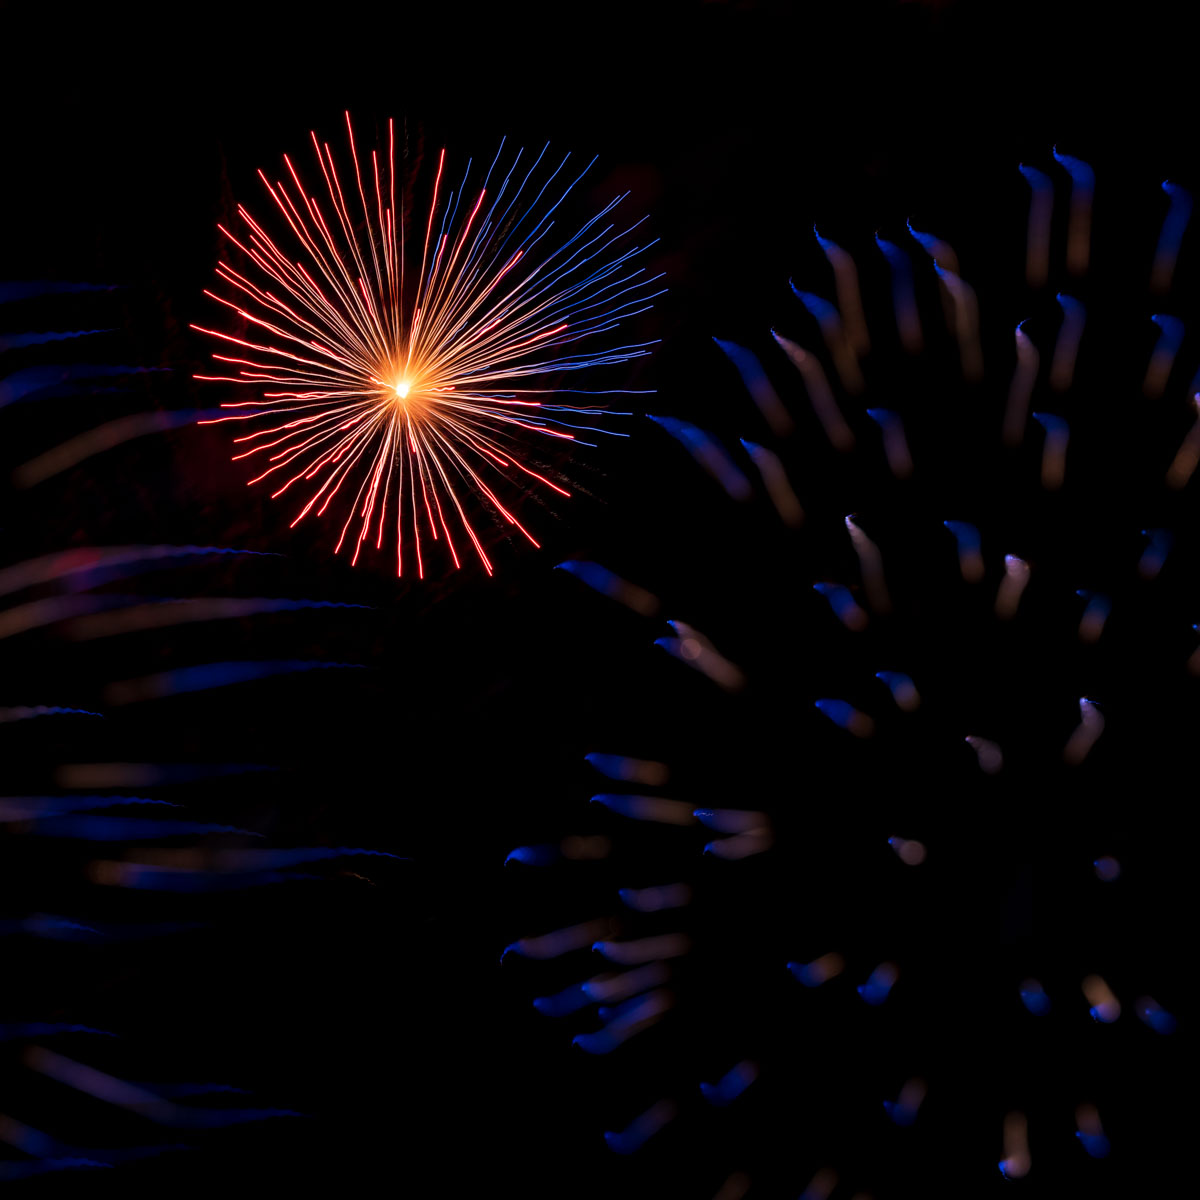 """Fireworks at Chicago's Navy Pier become pieces of abstract art using the """"focus pull"""" technique"""